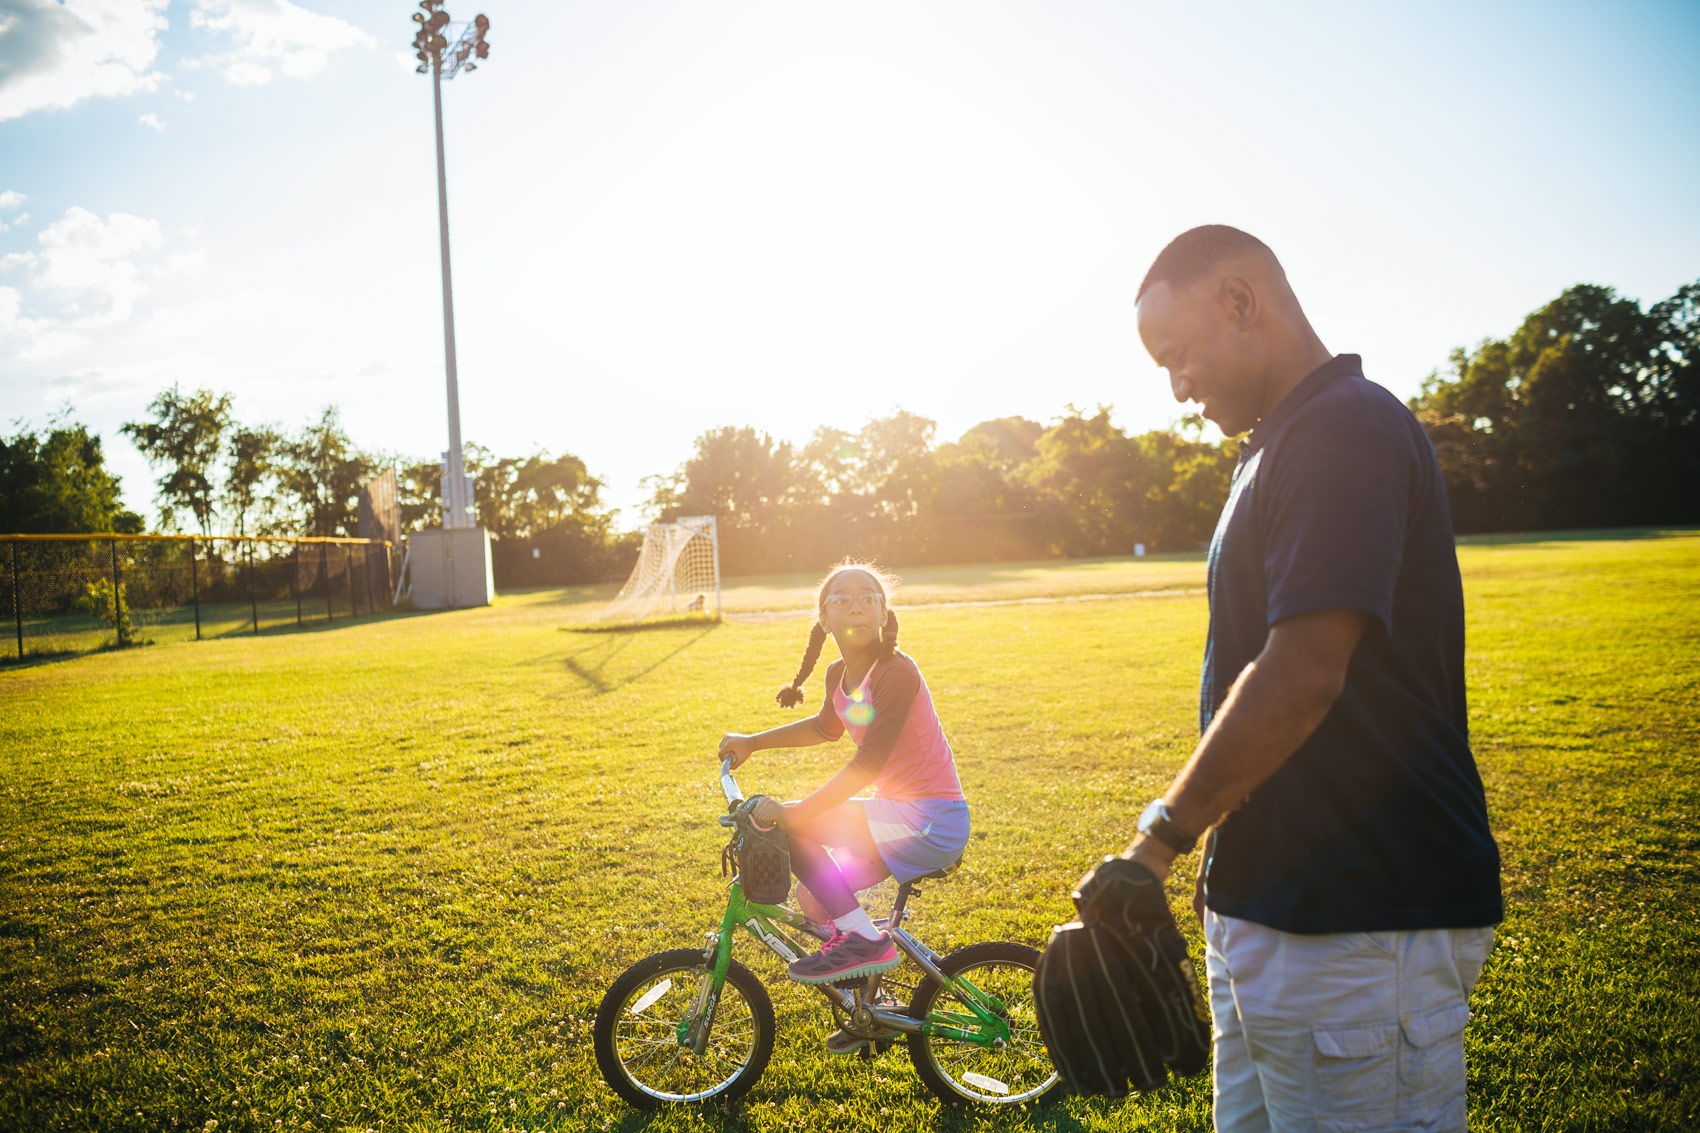 daughter riding on bicycle with father to softball practice, washington dc commercial photography